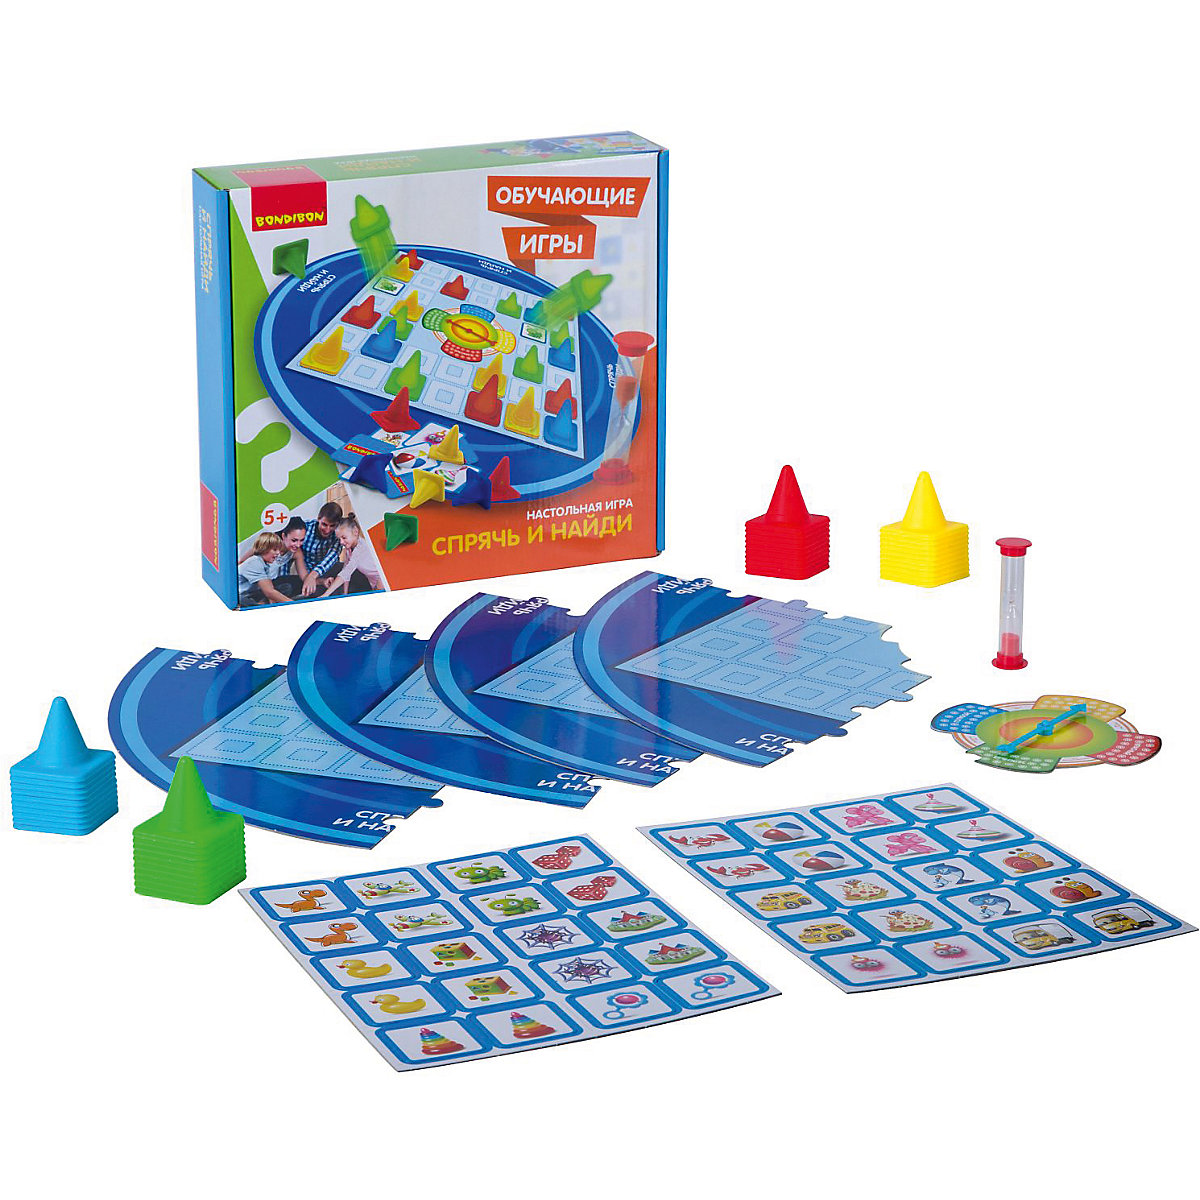 BONDIBON Party Games 9366338 education toys logic board game toy bondibon party games 10367336 education toys logic board game toy